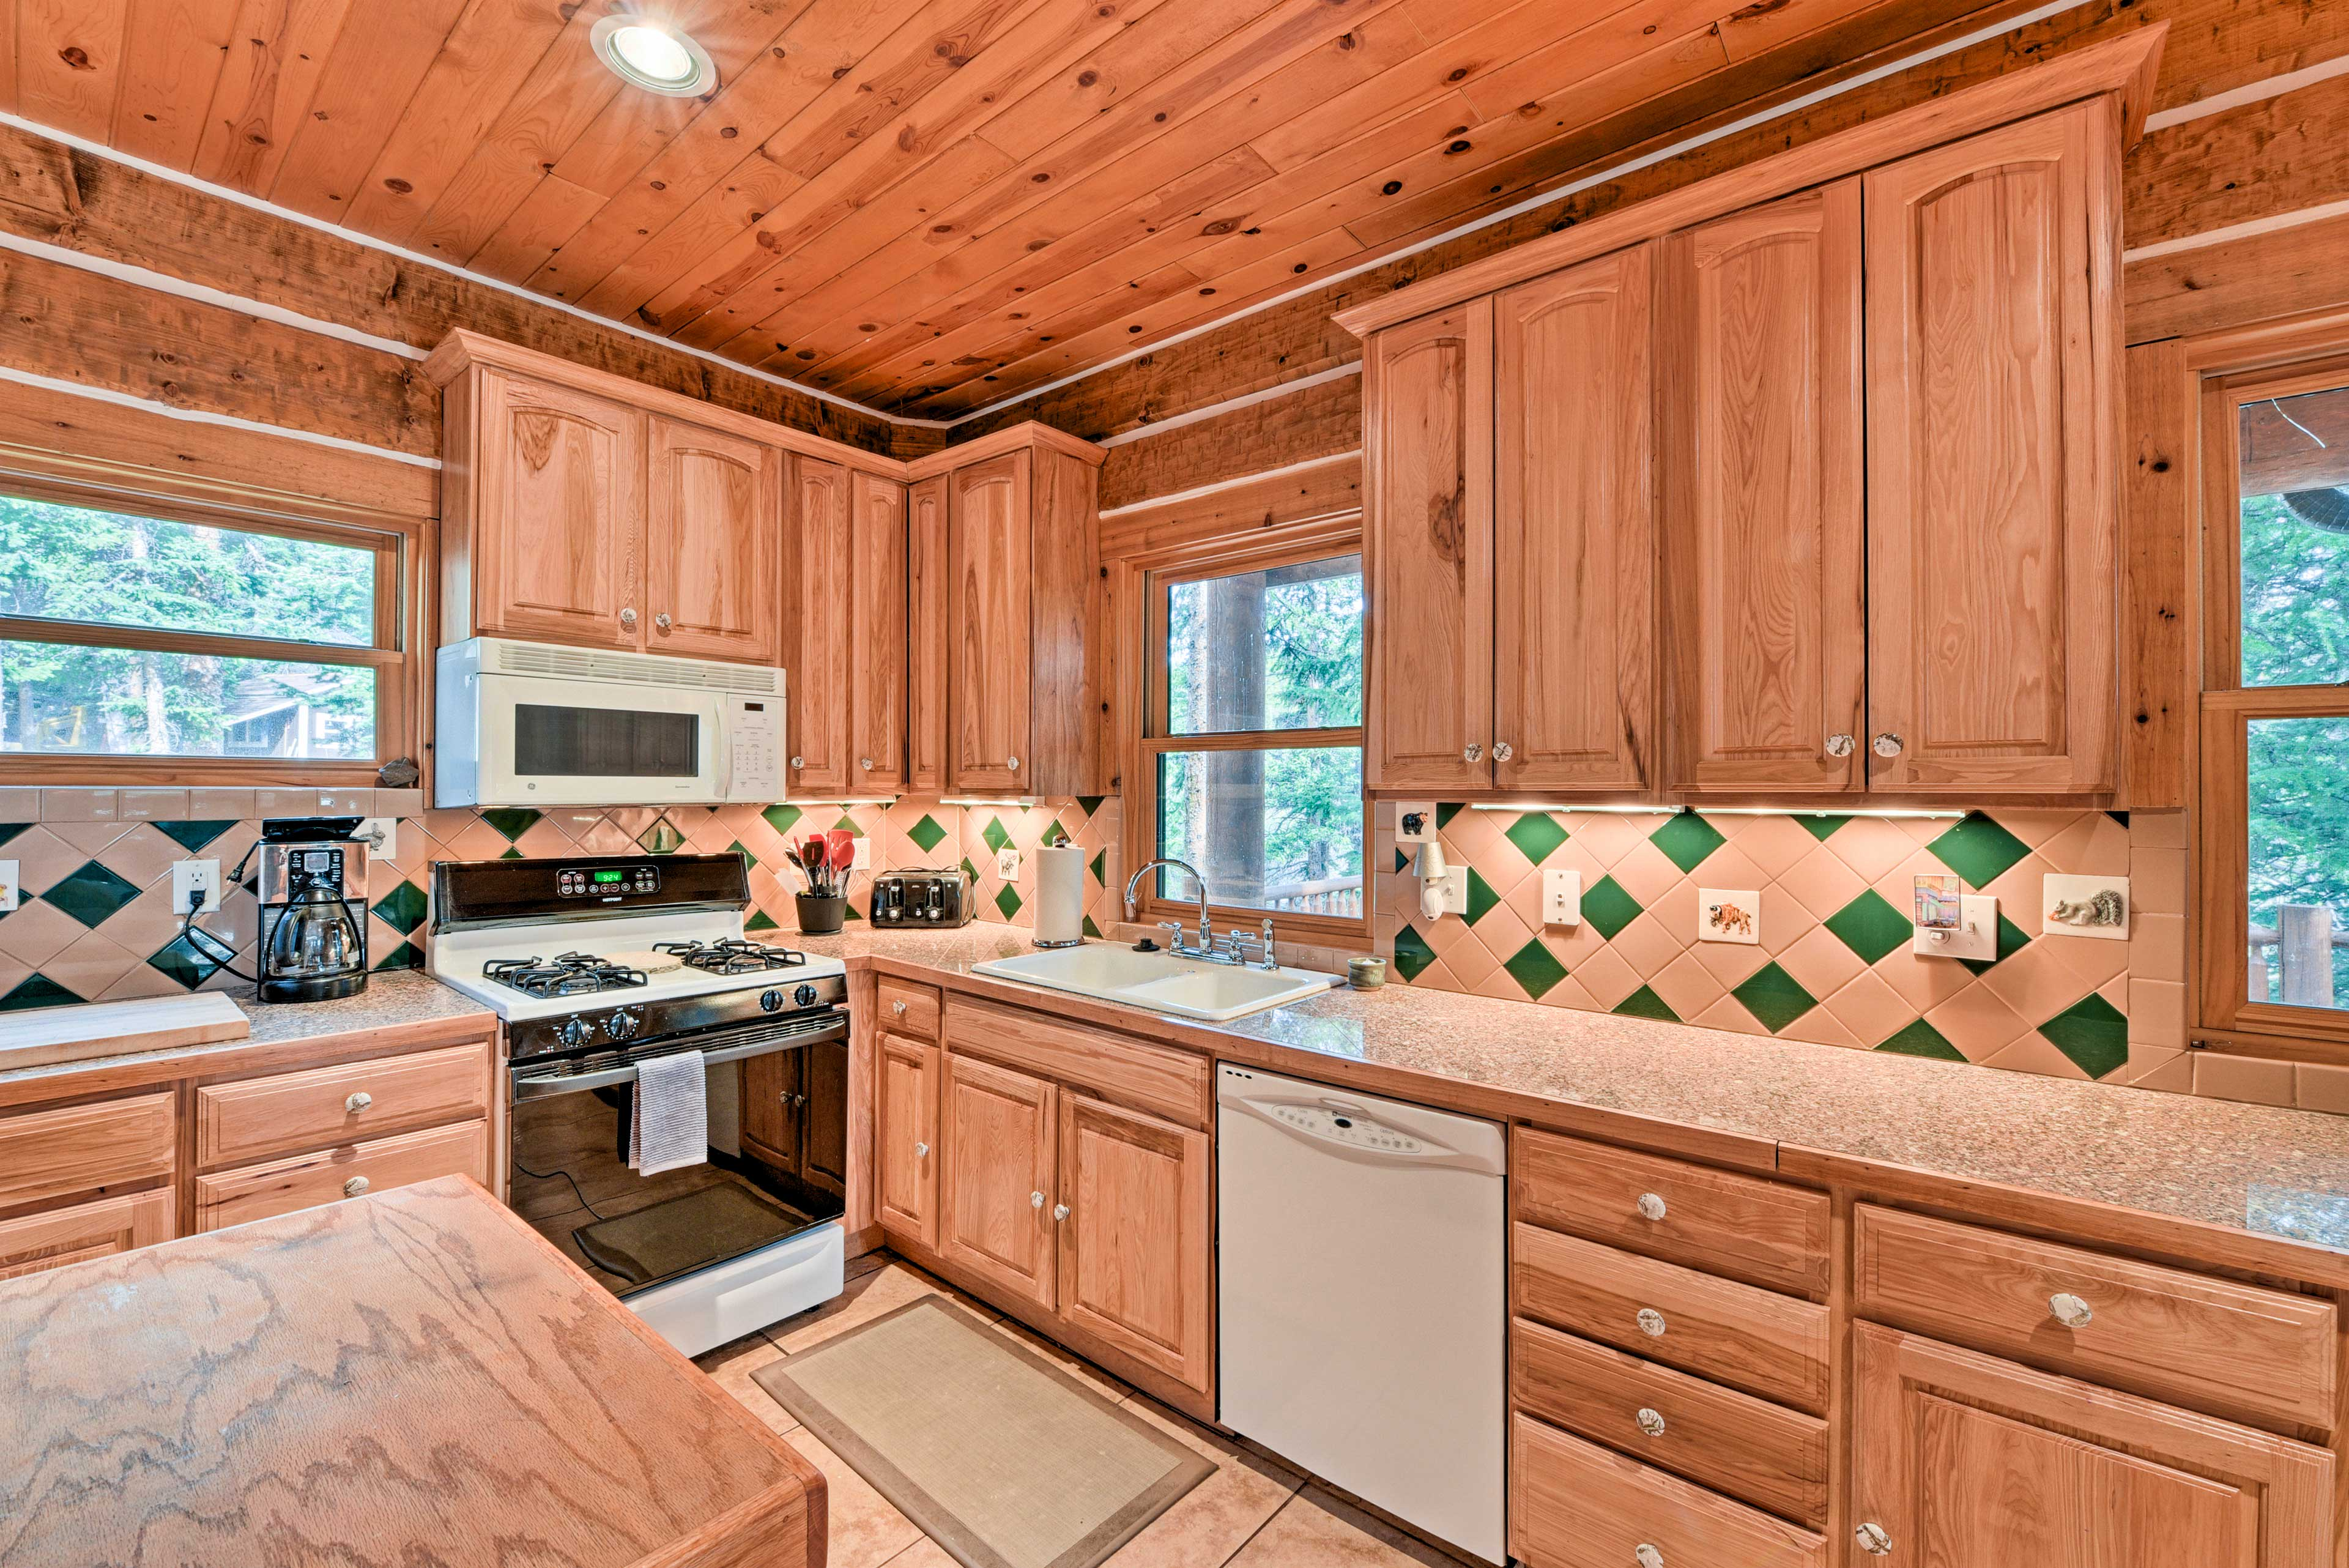 Prepare savory home-cooked meals in the spacious kitchen.